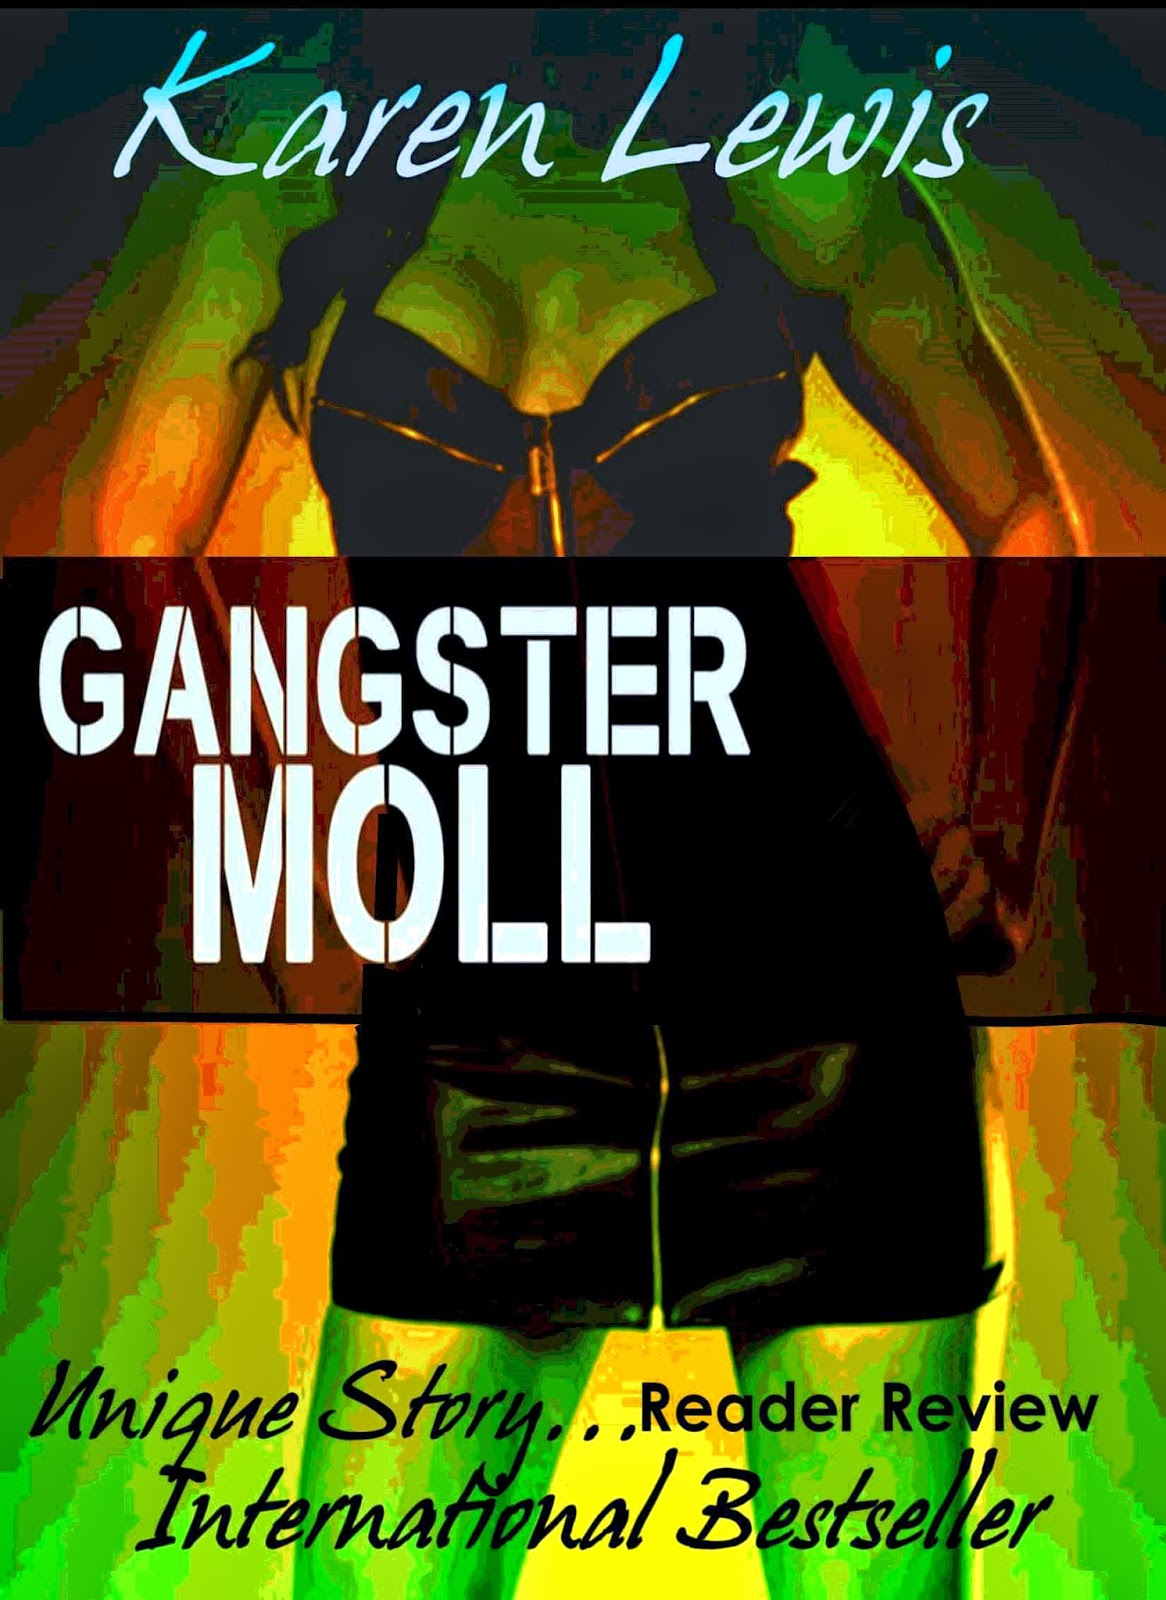 http://www.amazon.co.uk/Gangster-Moll-Karen-Lewis-ebook/dp/B00KFUZ5NM/ref=sr_1_1?s=books&ie=UTF8&qid=1400558937&sr=1-1&keywords=GANGSTER+MOLL%2C+lewis